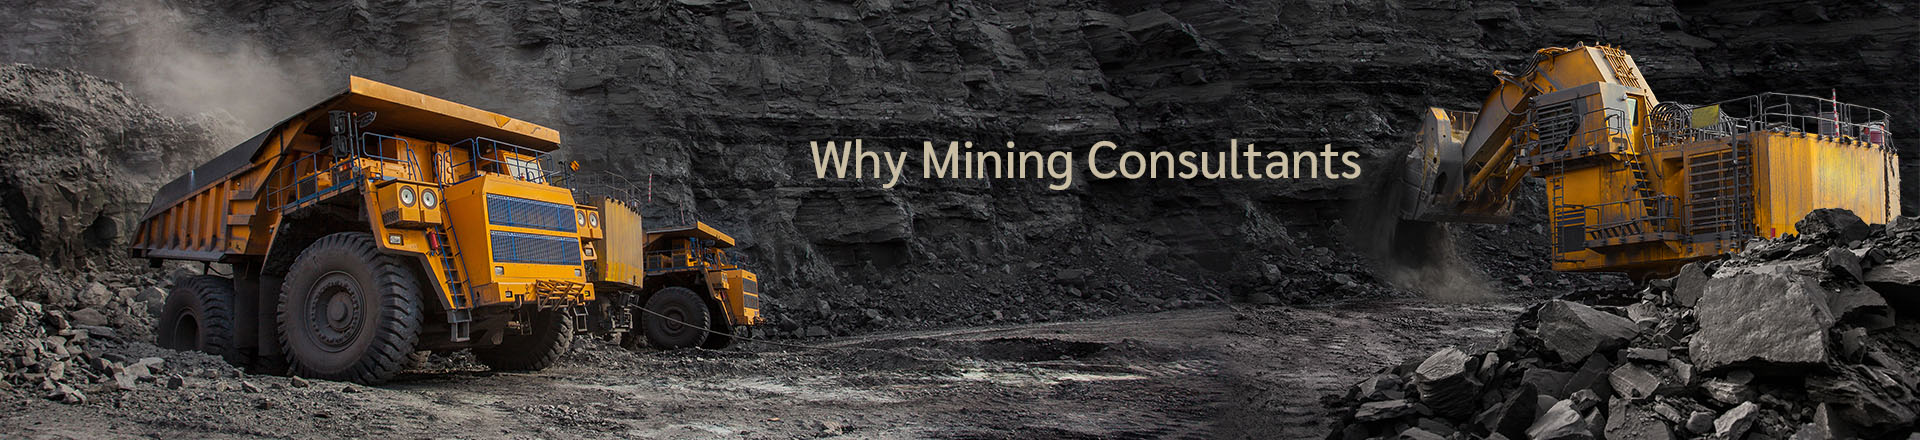 Why mining consultants